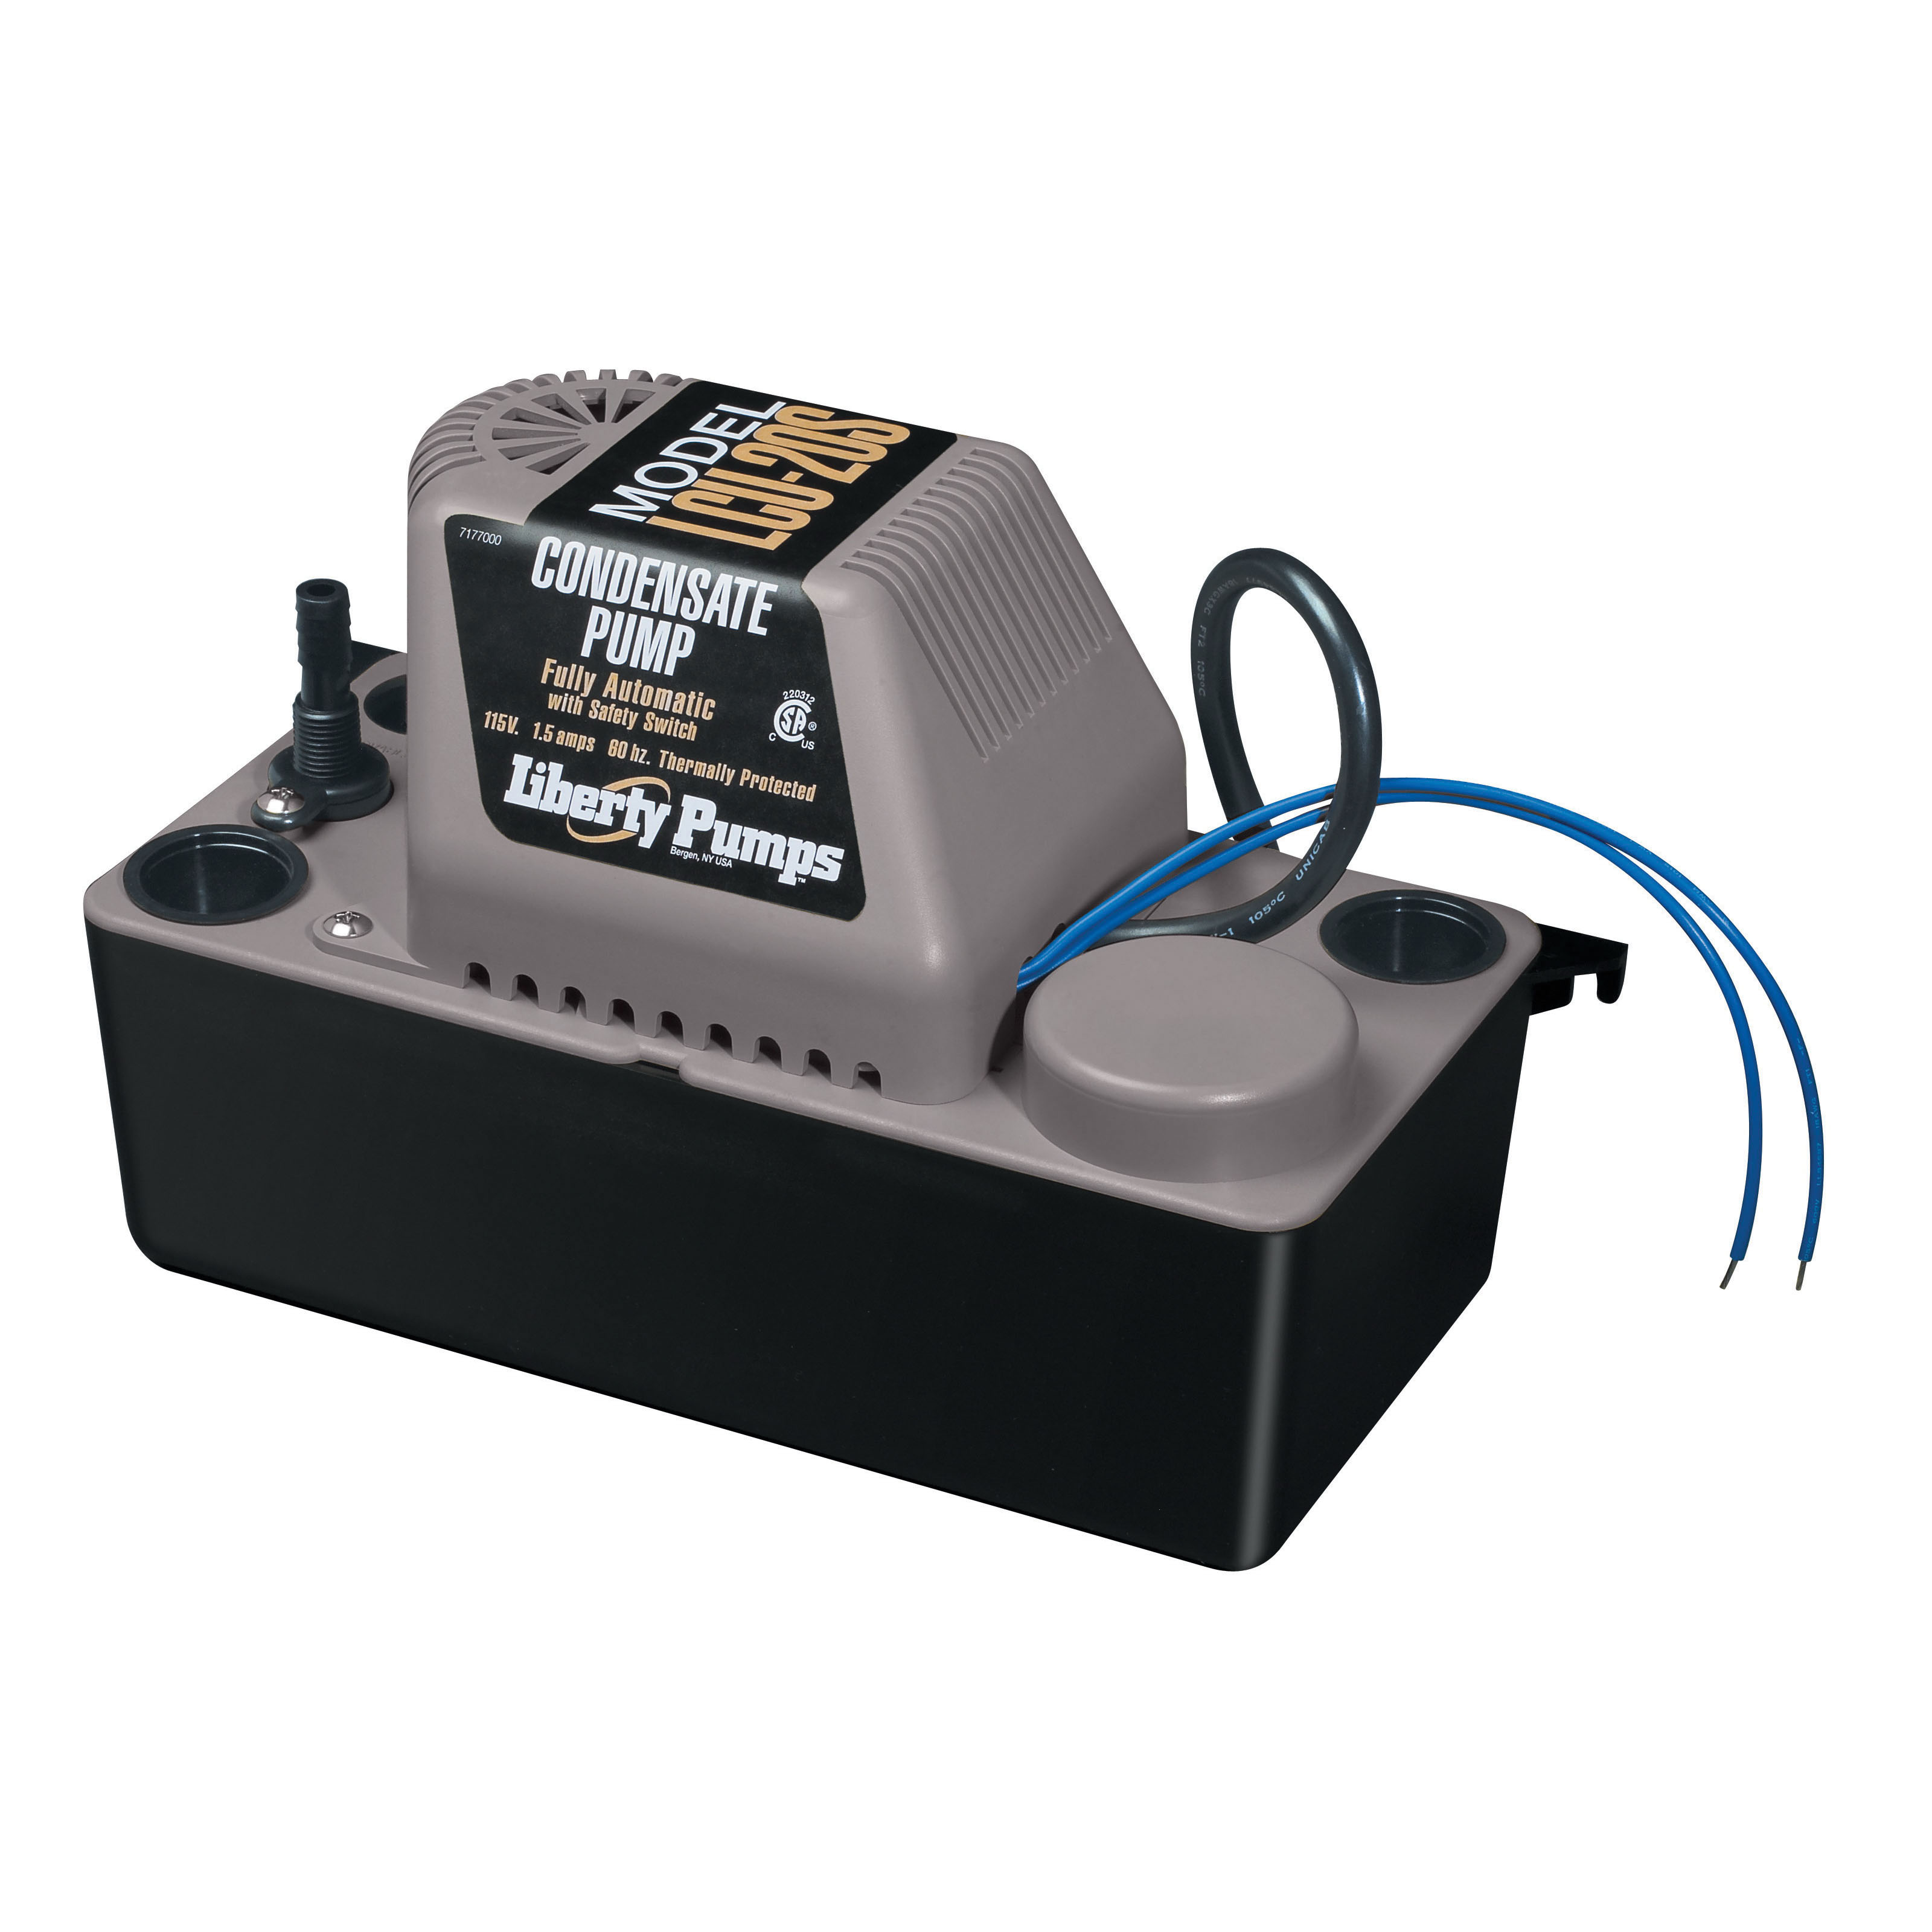 Liberty Pumps® LCU-20S Condensate Pump With Safety Switch, 110 gpm Flow Rate, 3/8 in OD Outlet, 20 ft Shutoff Head, 1/30 hp Power Rating